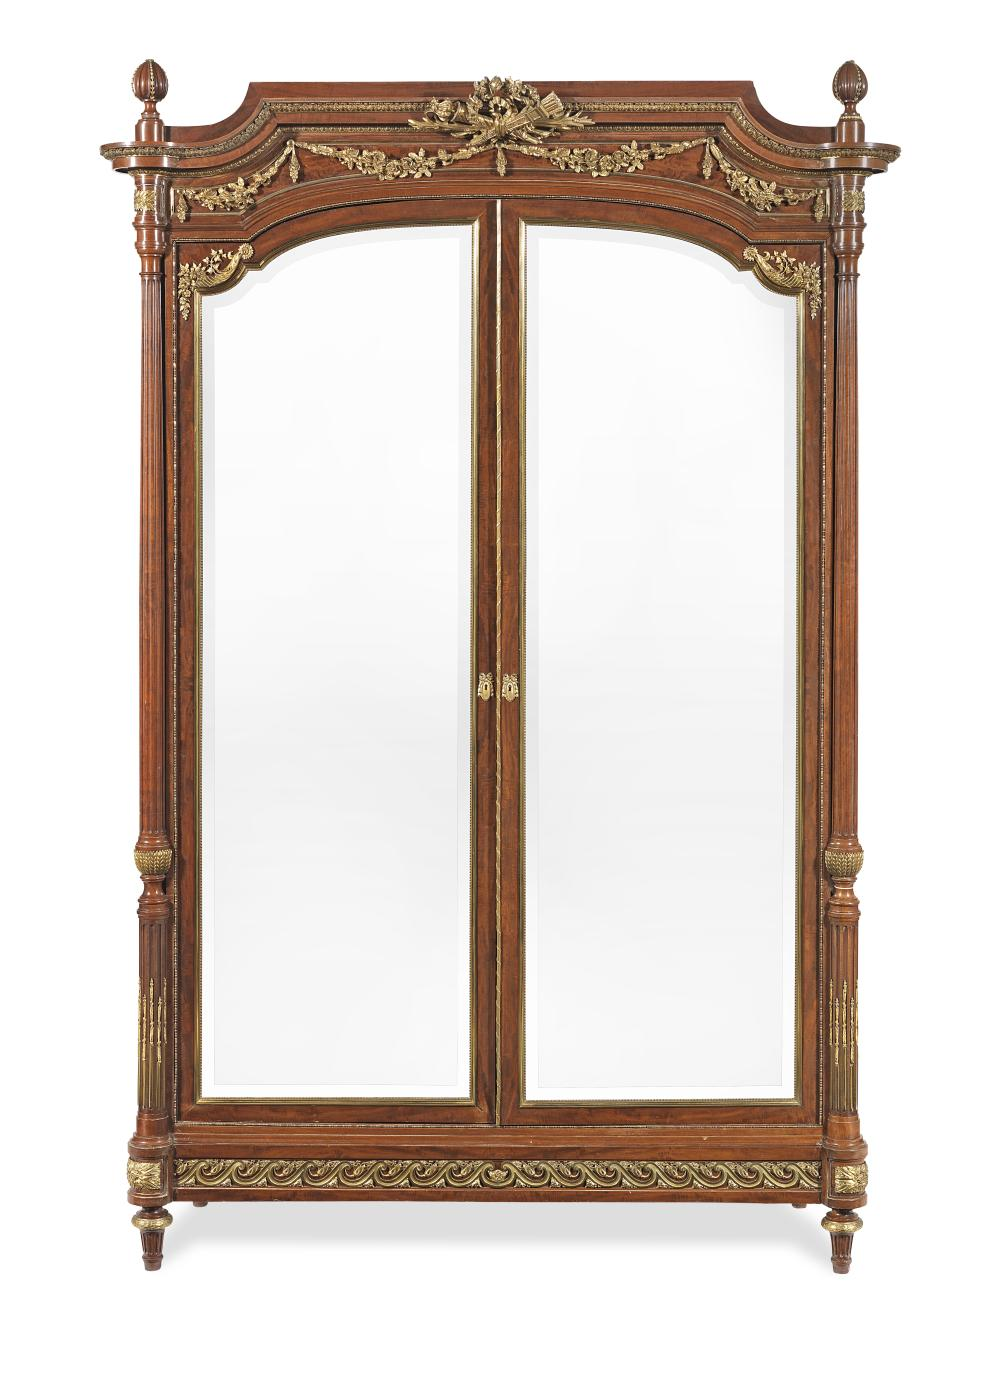 A French late 19th century ormolu mounted mahogany armoire in the Louis XVI style possibly by Francois Linke